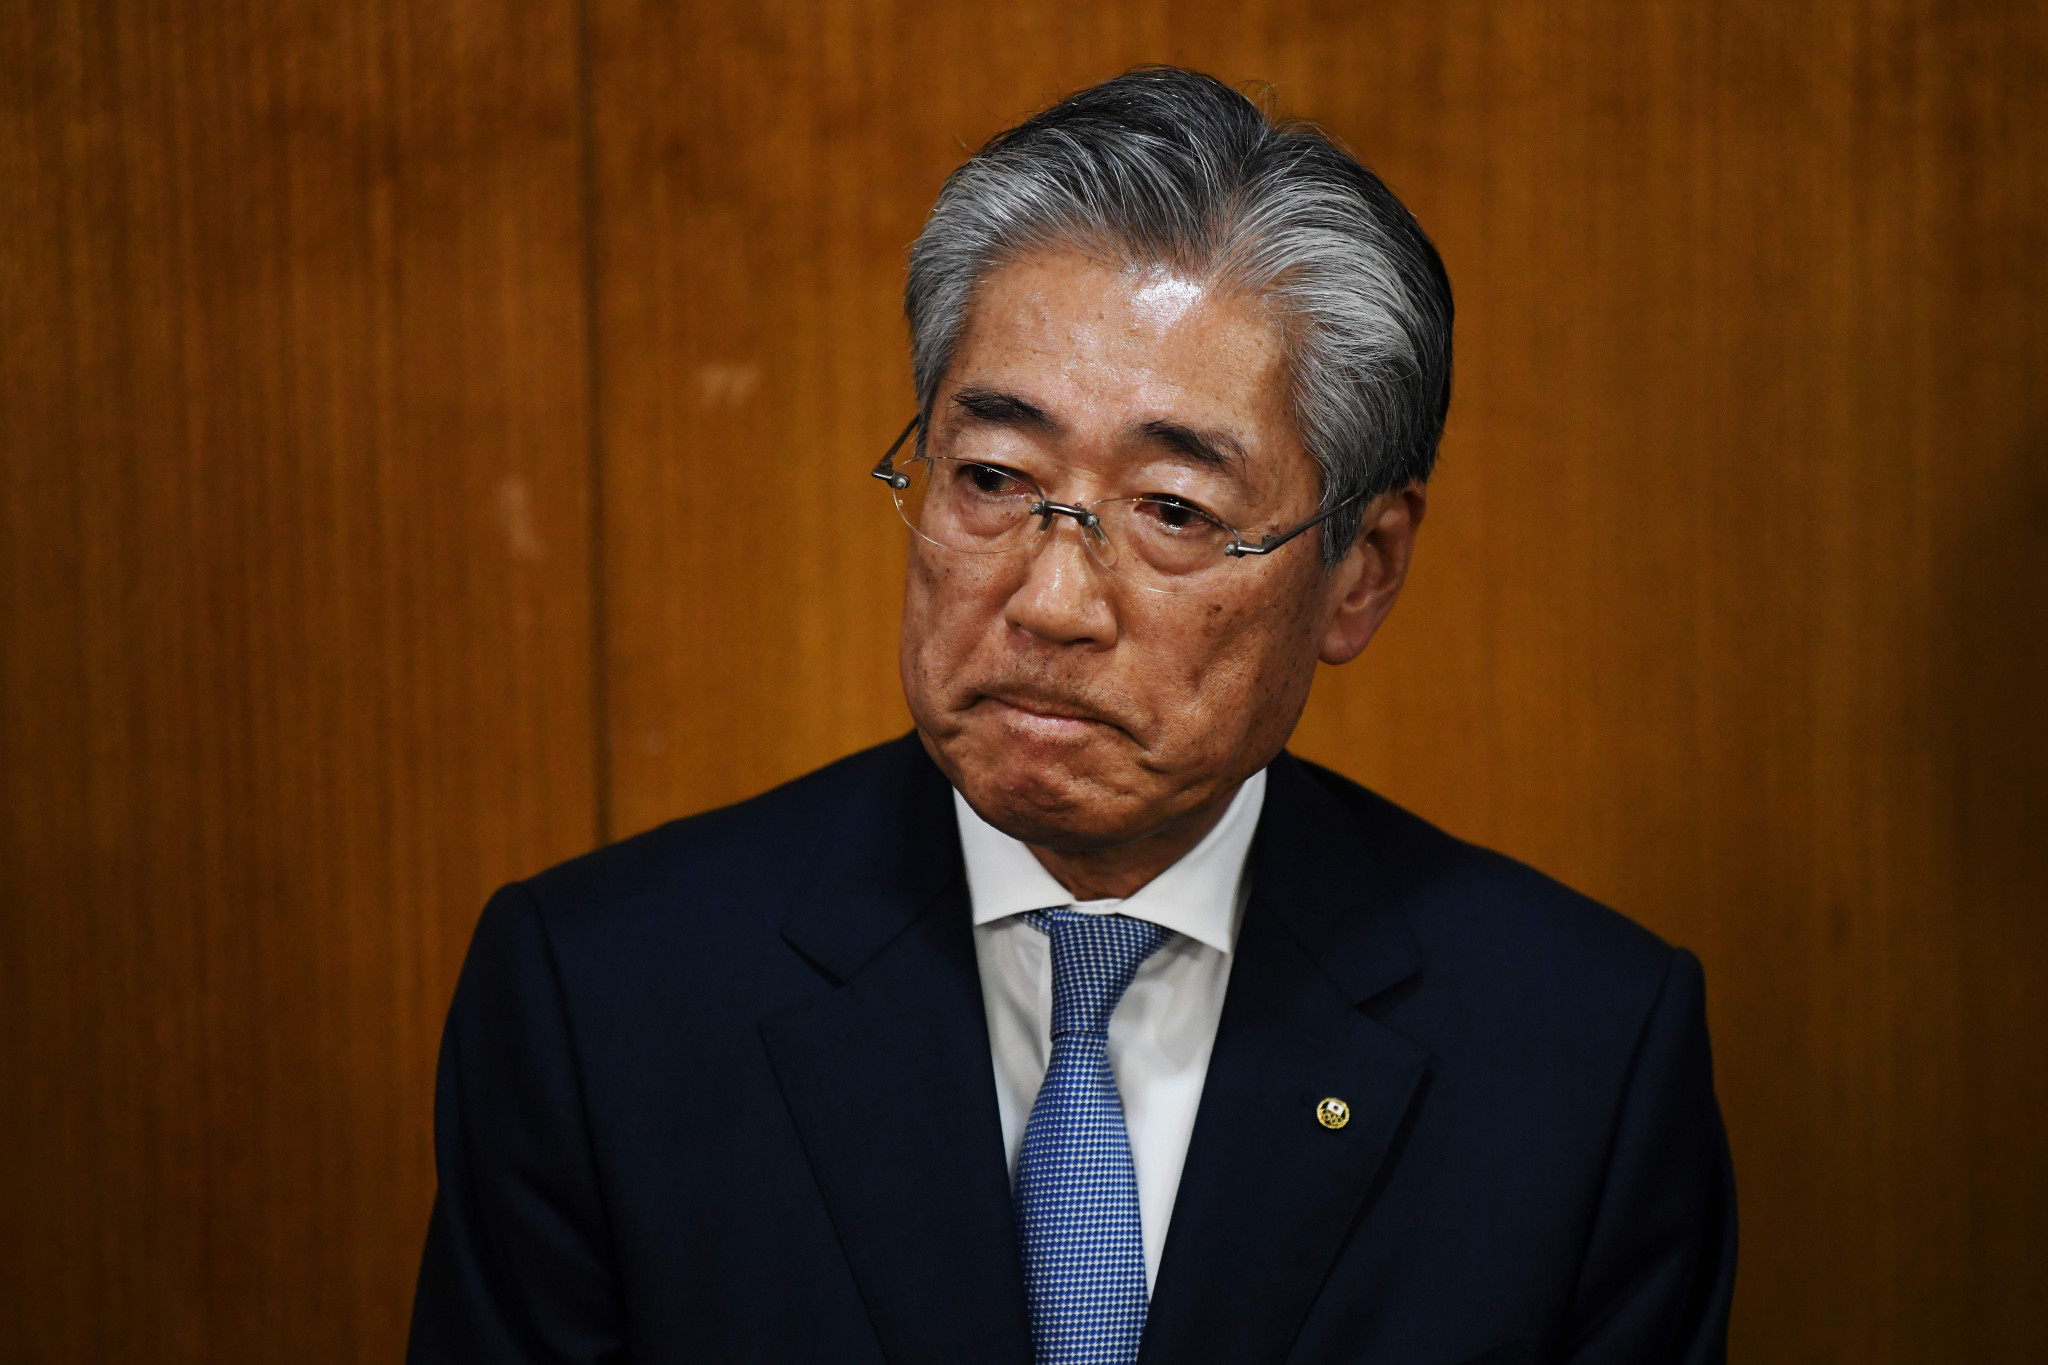 Takeda to resign from IOC and as JOC President amid bribery allegations